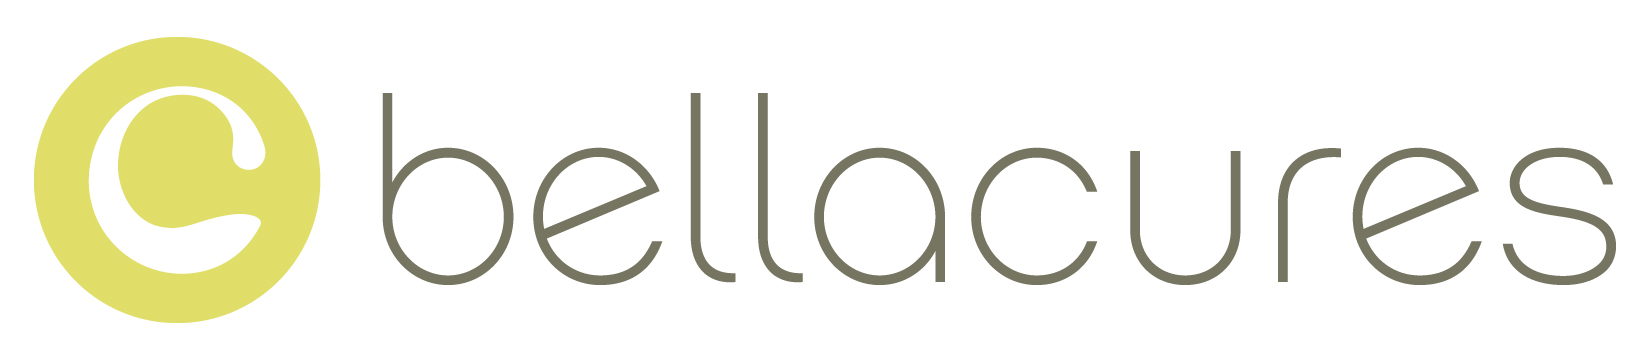 Bellacures logo